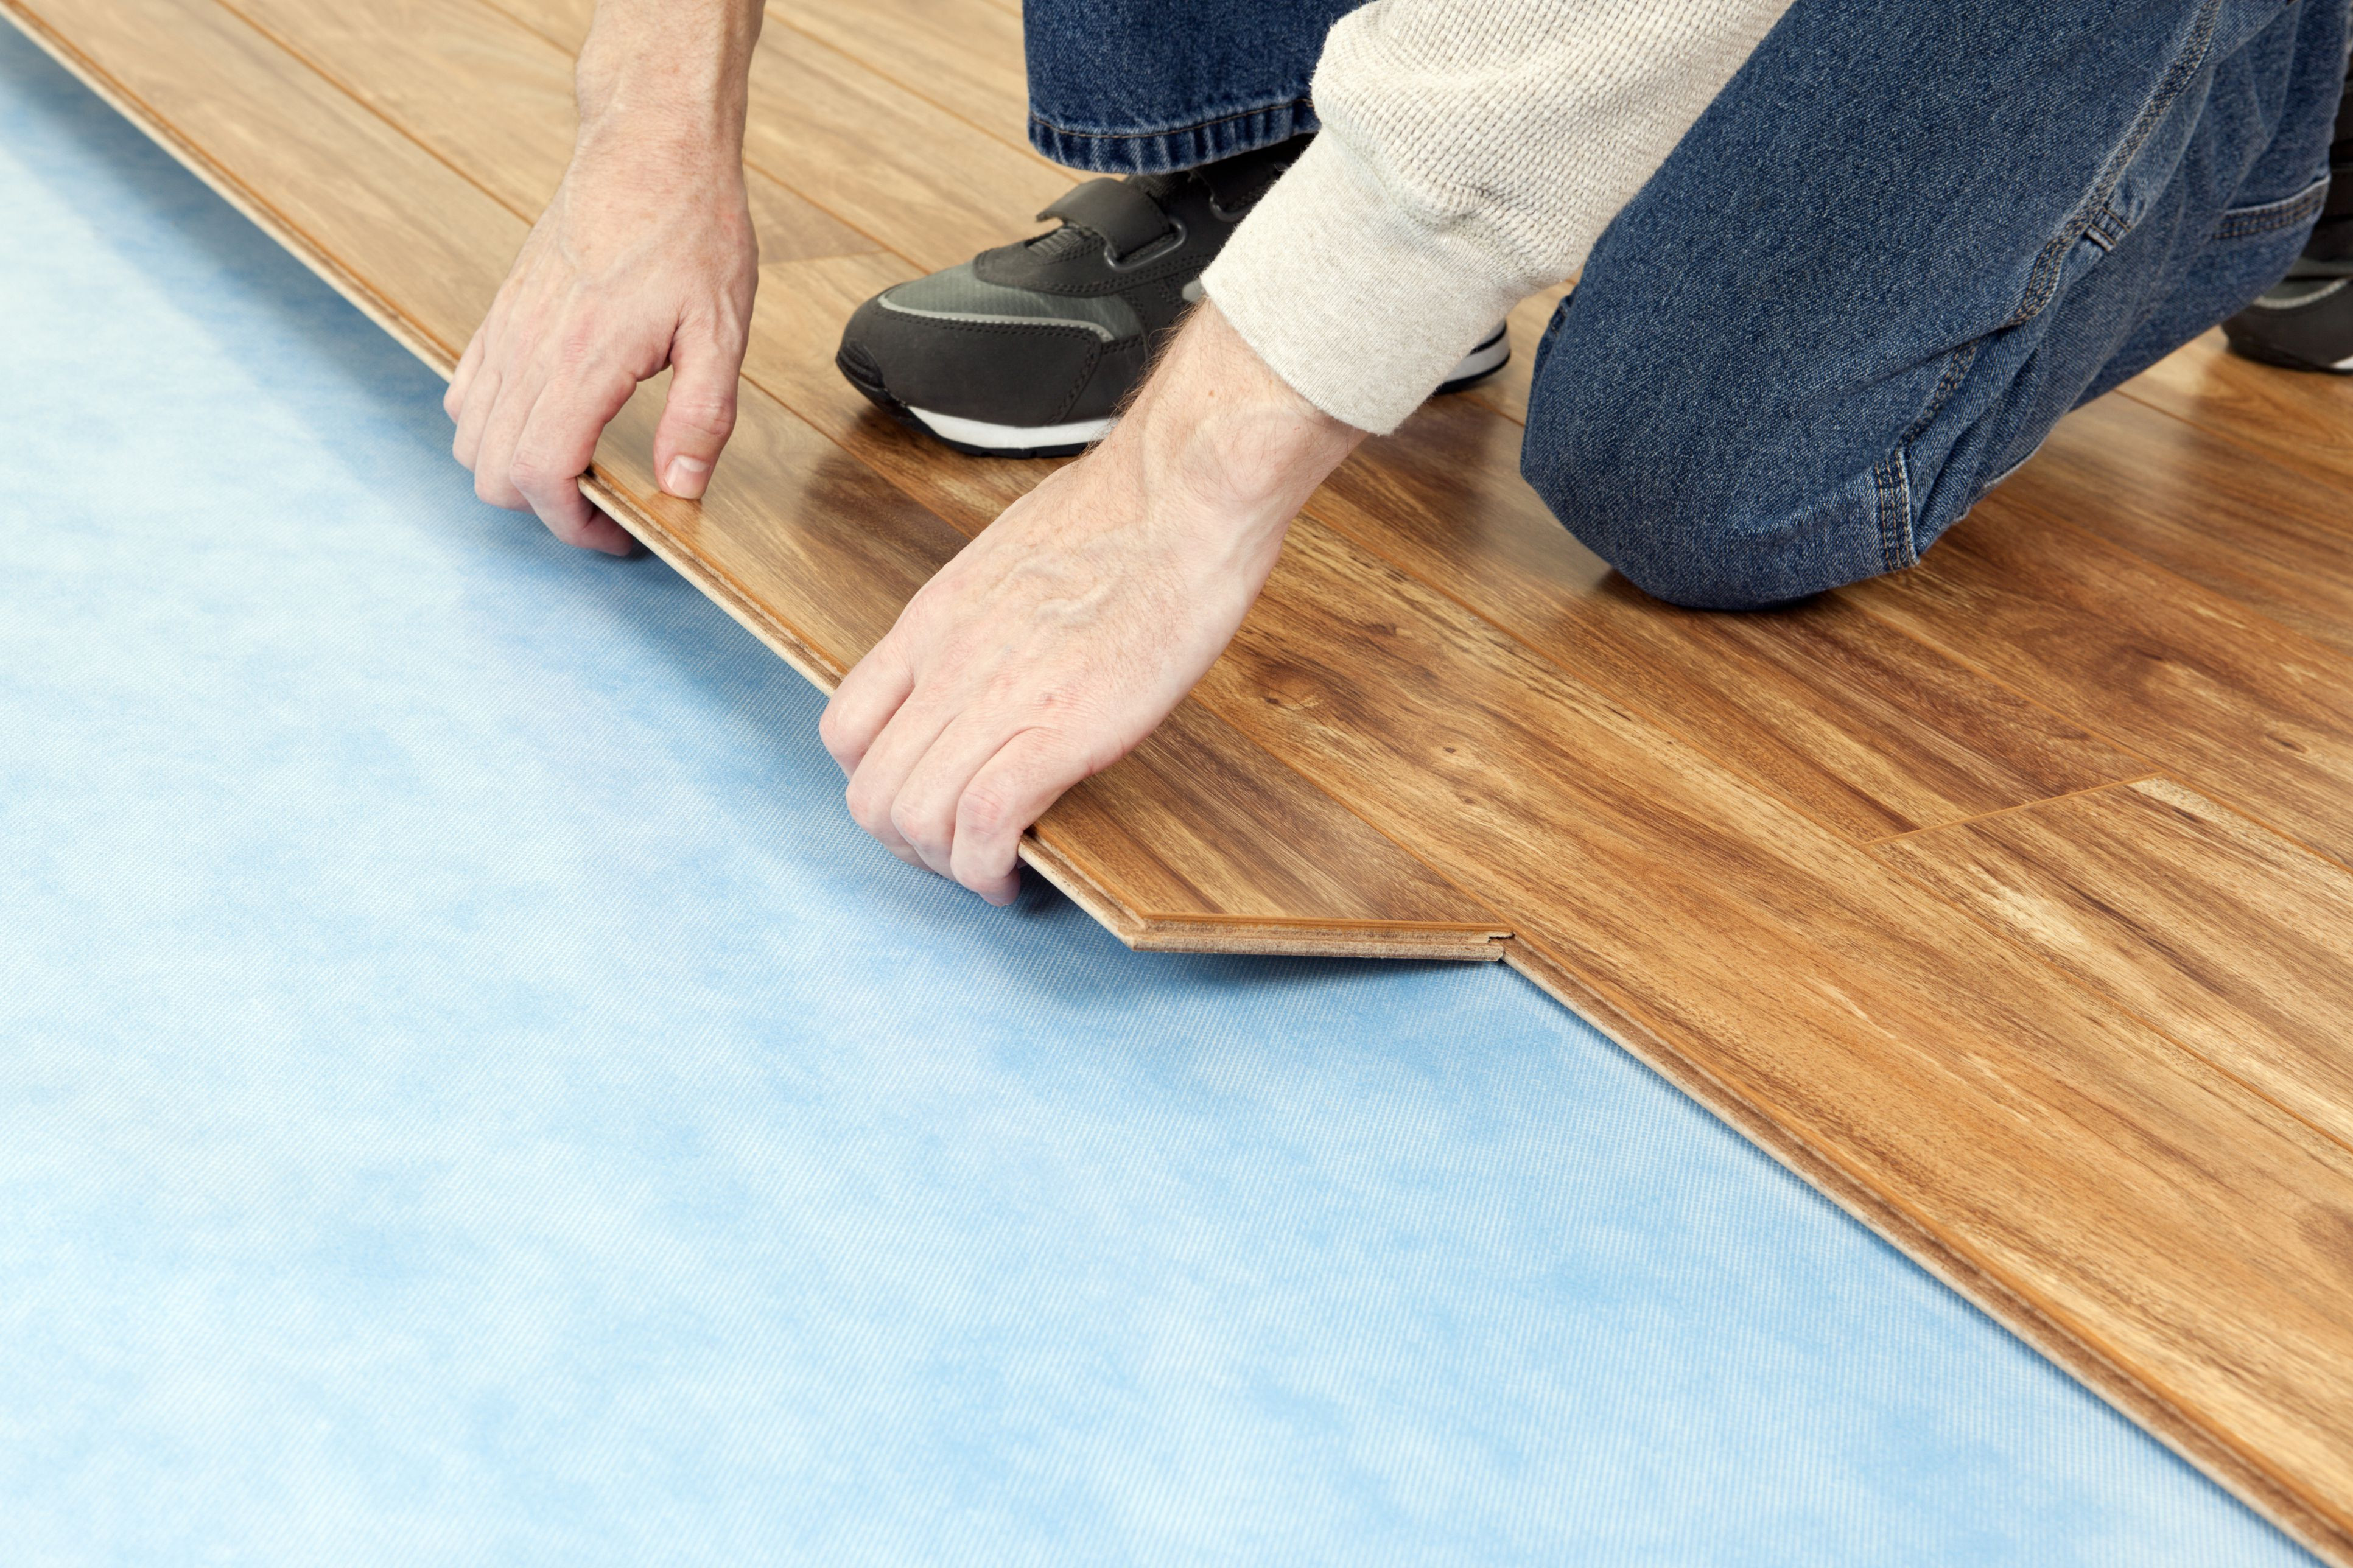 4 1 4 hardwood flooring of flooring underlayment the basics with regard to new floor installation 185270632 582b722c3df78c6f6af0a8ab